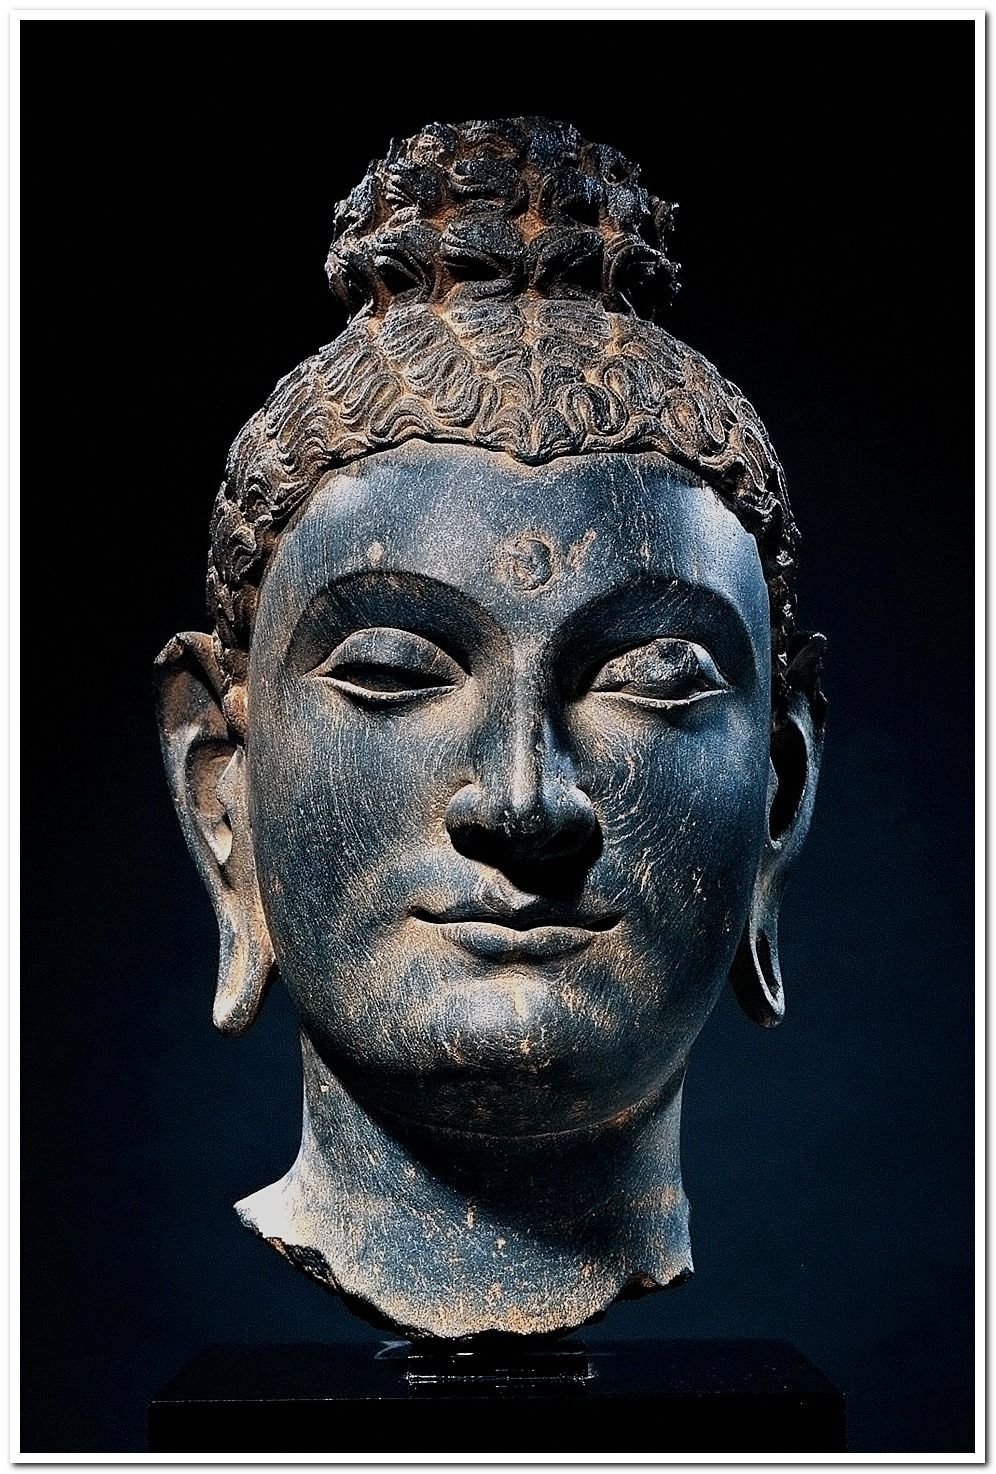 ead of Buddha (Kushan period, late 2nd-3rd century). Gandharan. Carved out of Phyllite